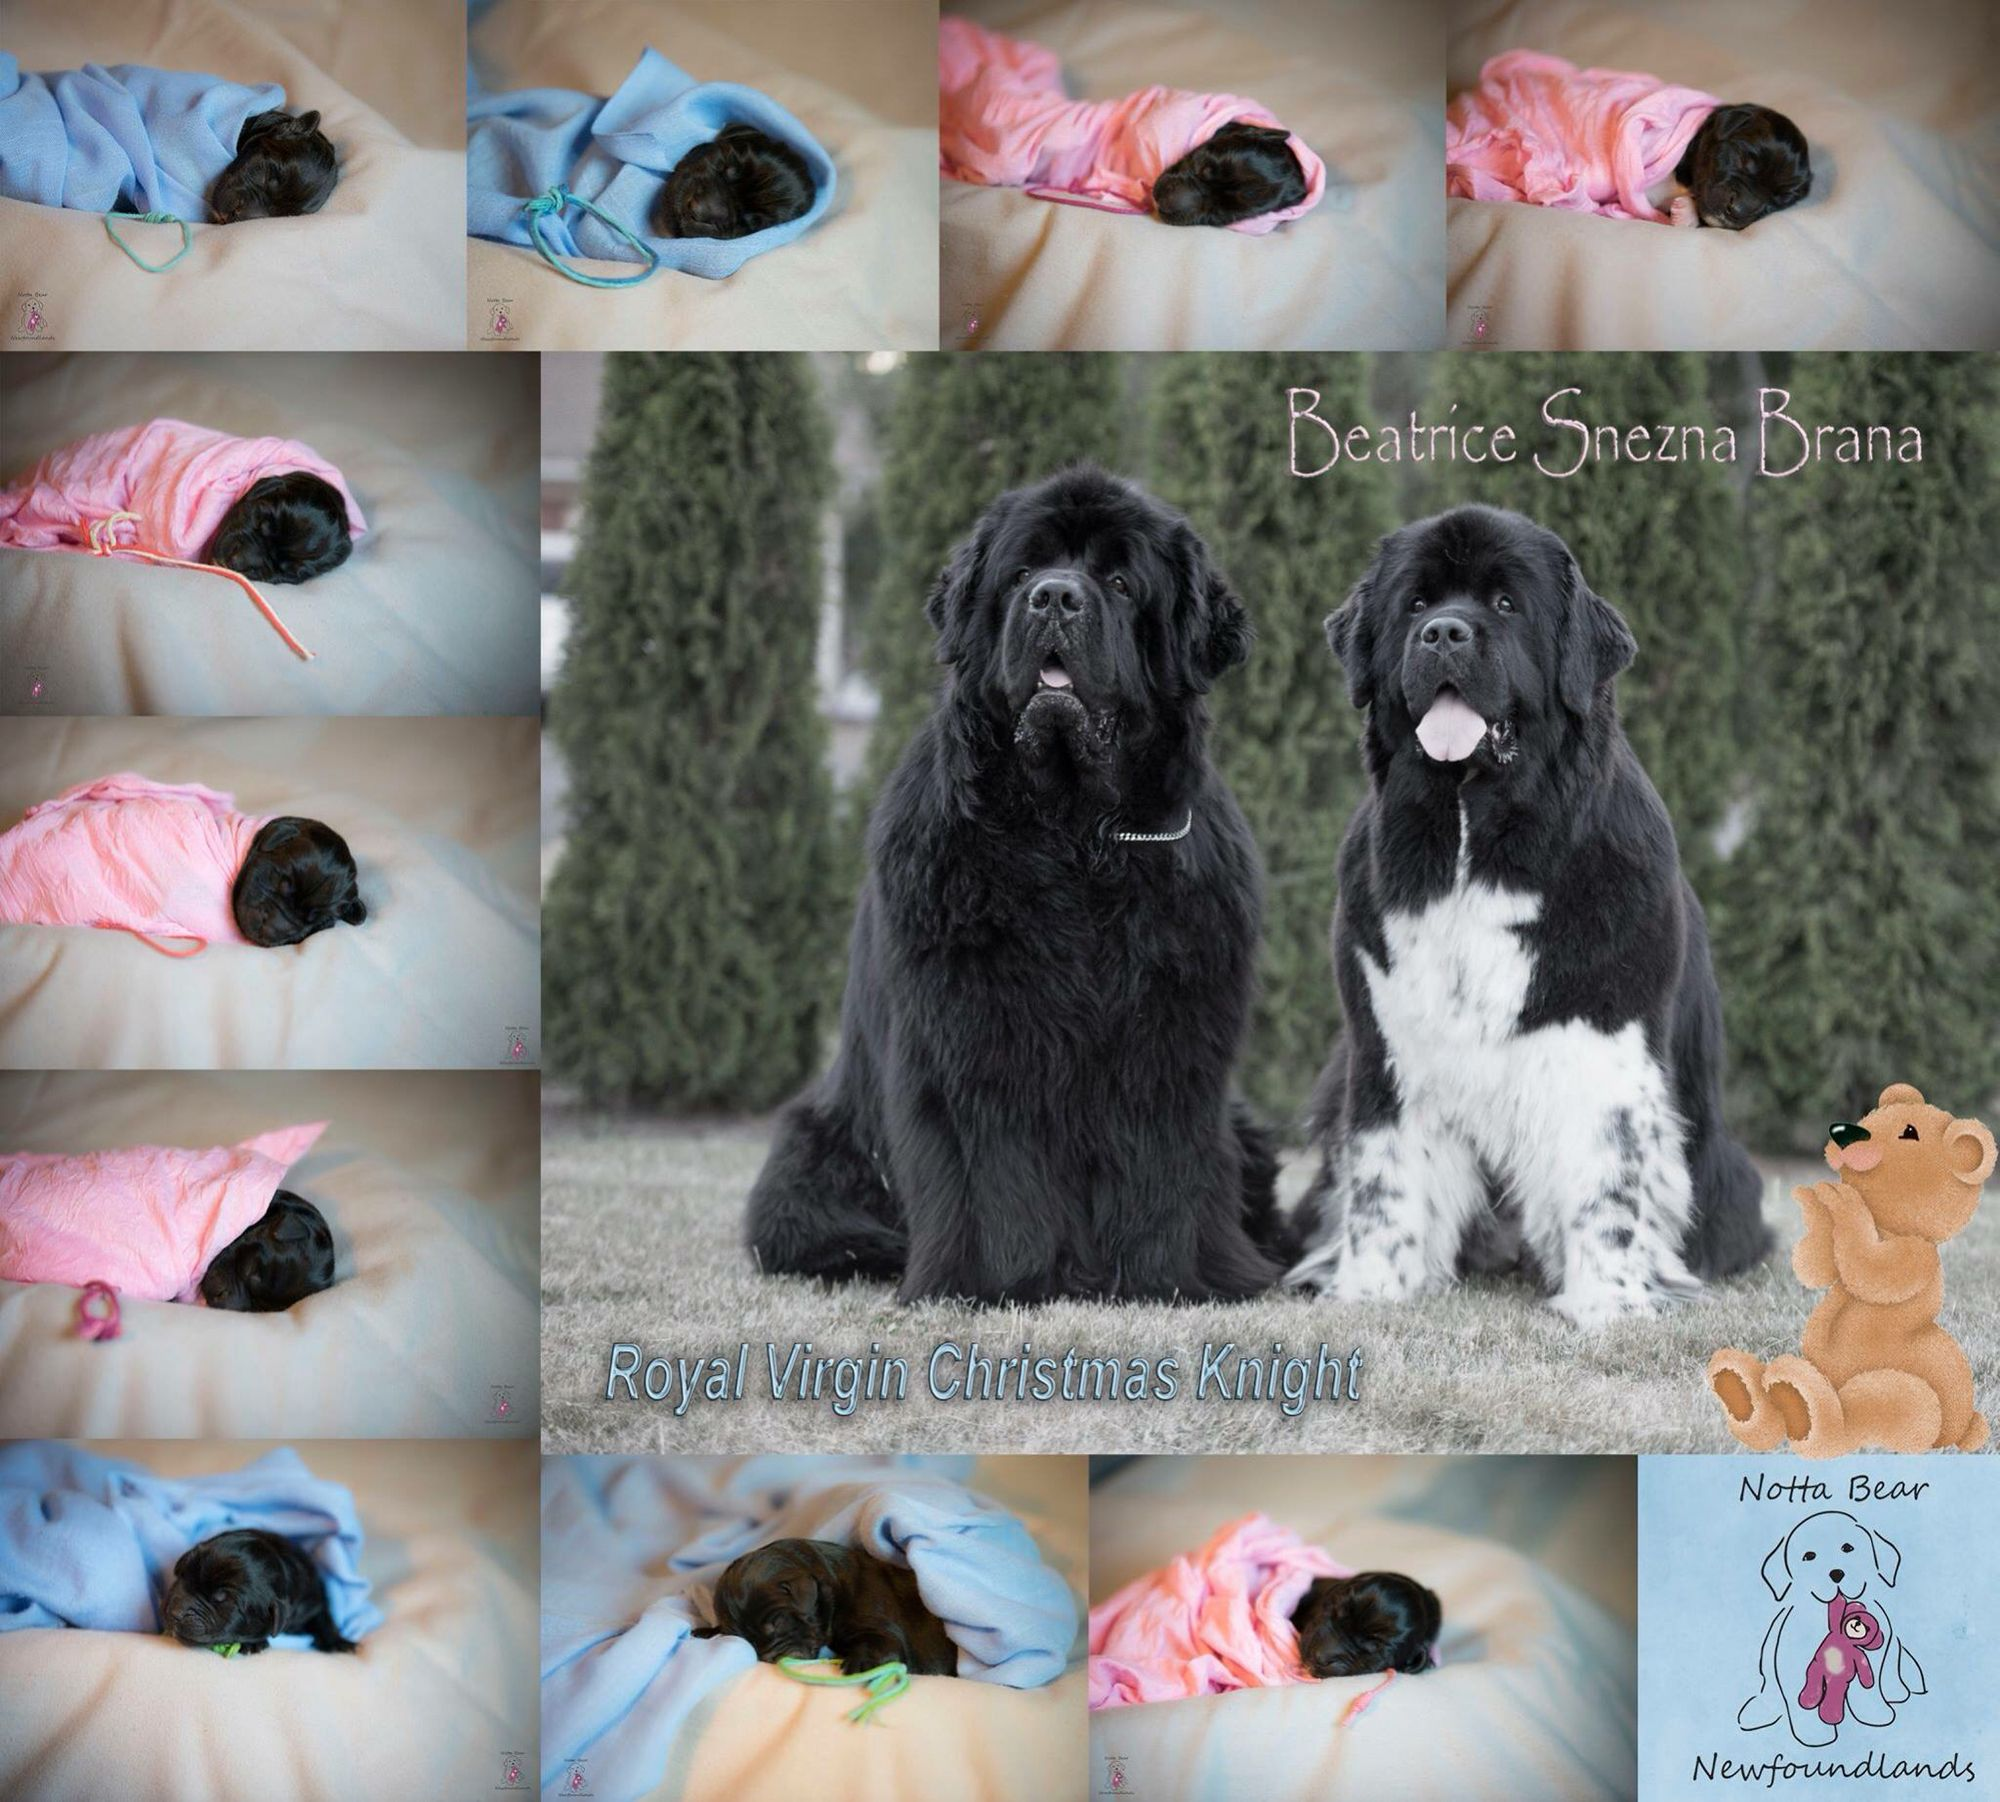 Notta Bear Newfoundlands Puppy Litter Photo With Images Puppy